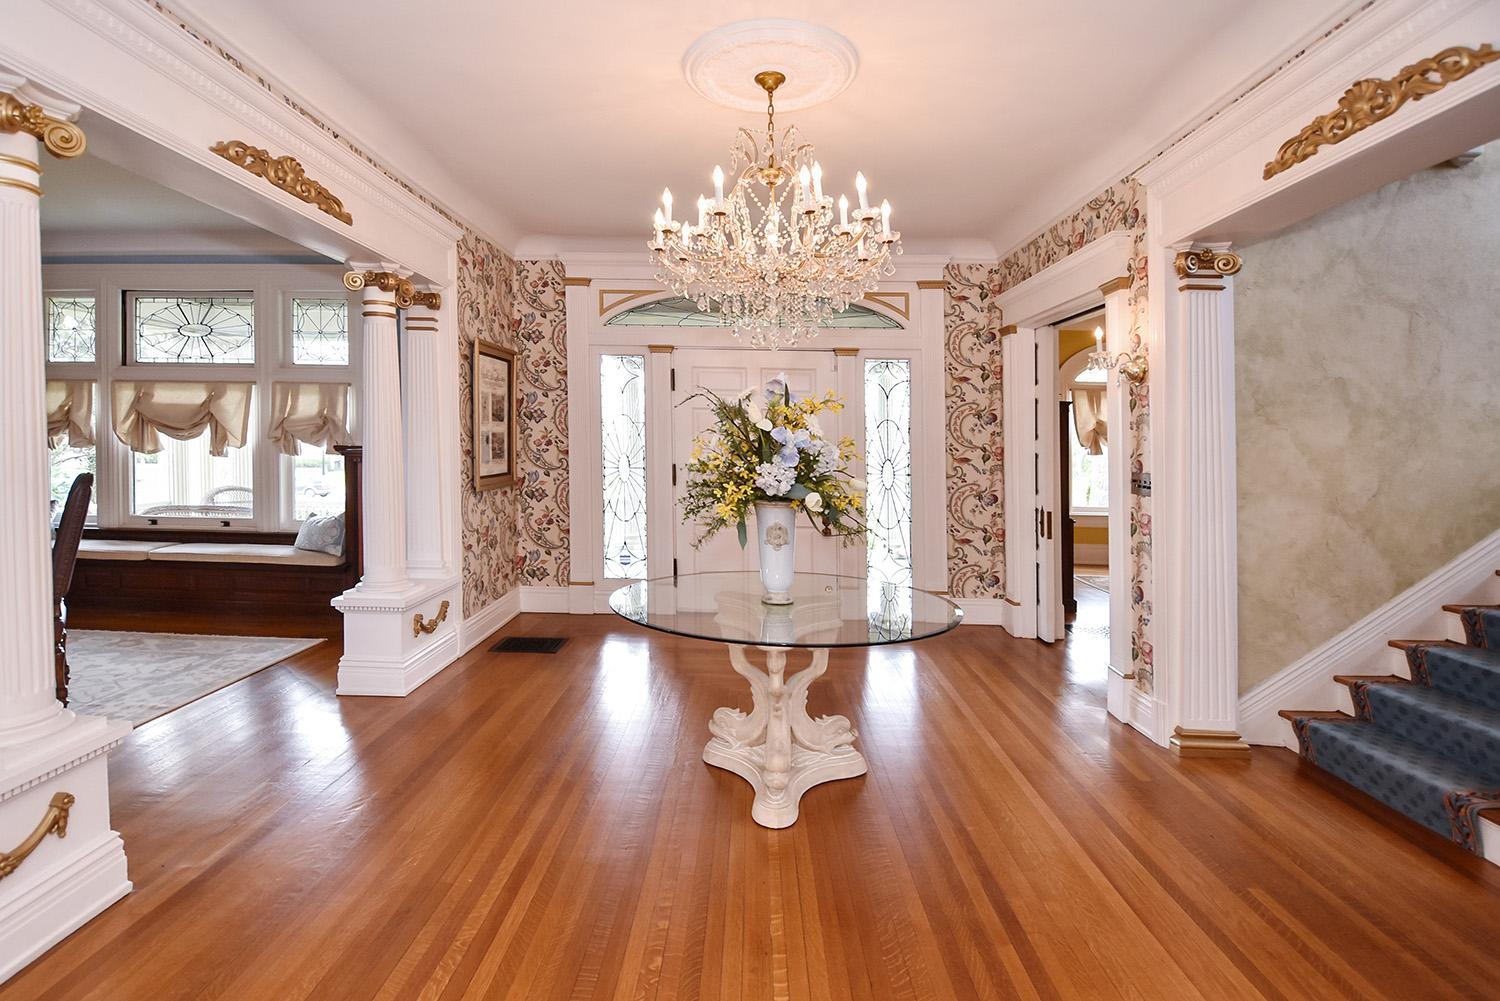 3732 Clifton Ave is a 5-bedroom, 4-bathroom (3 full and 1 half) historic treasure. It was recently listed by Holly Finn of Coldwell Banker West Shell at a price of $650,000, and a sale is already pending on the home. / Image: Kathy Kelley // Published: 5.14.18